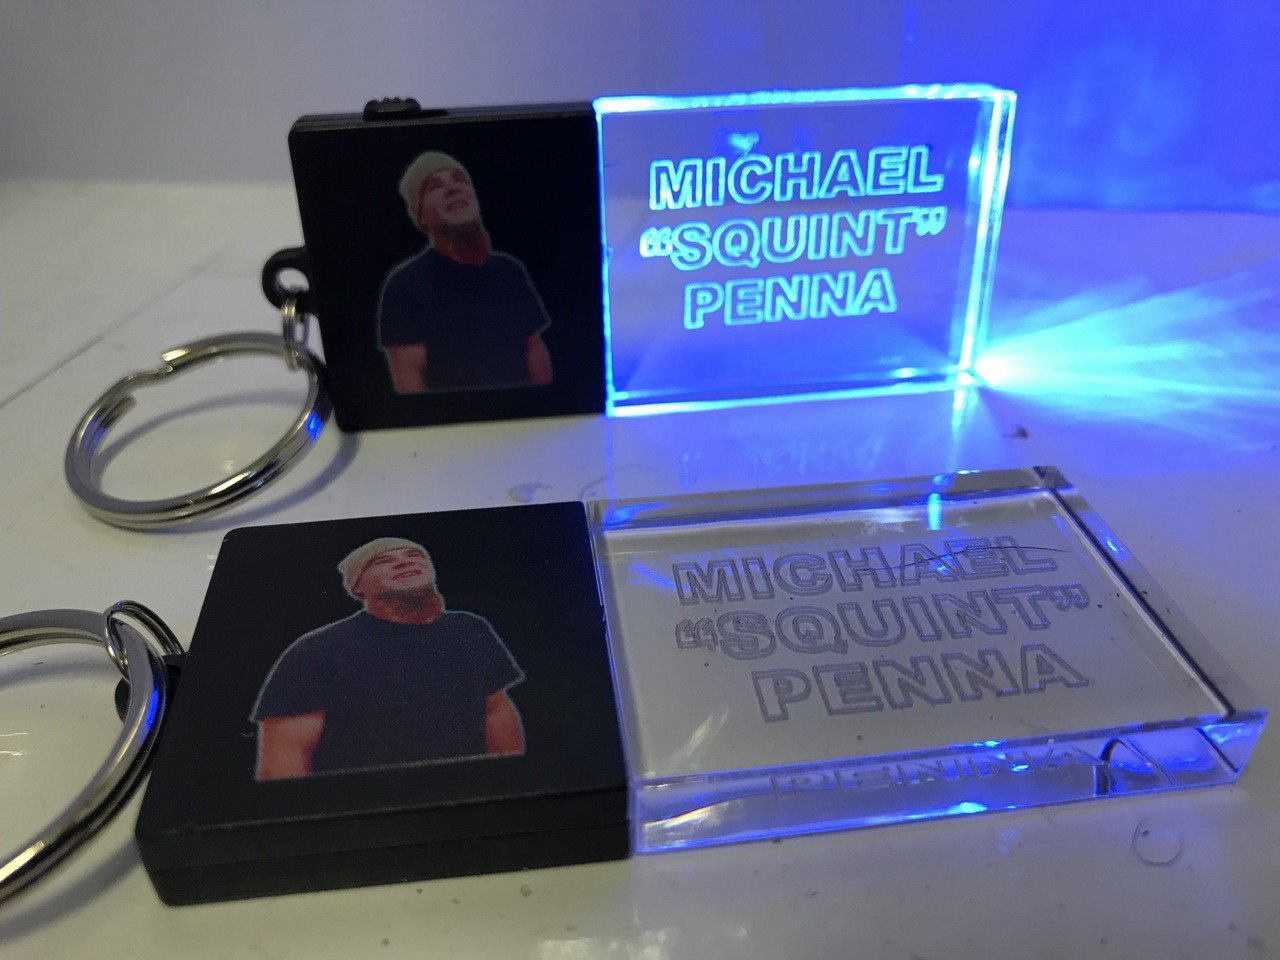 LED,Keychain,Key,chain,LED keychain, custom, BEAM, dual, print,engraved, logo,text, laser engraved,personalized,promo,merch,fundraiser,nightclub,fund raiser,Rest in Peace, two,dual, branding, sponsor, team,Squint,Michael Pena